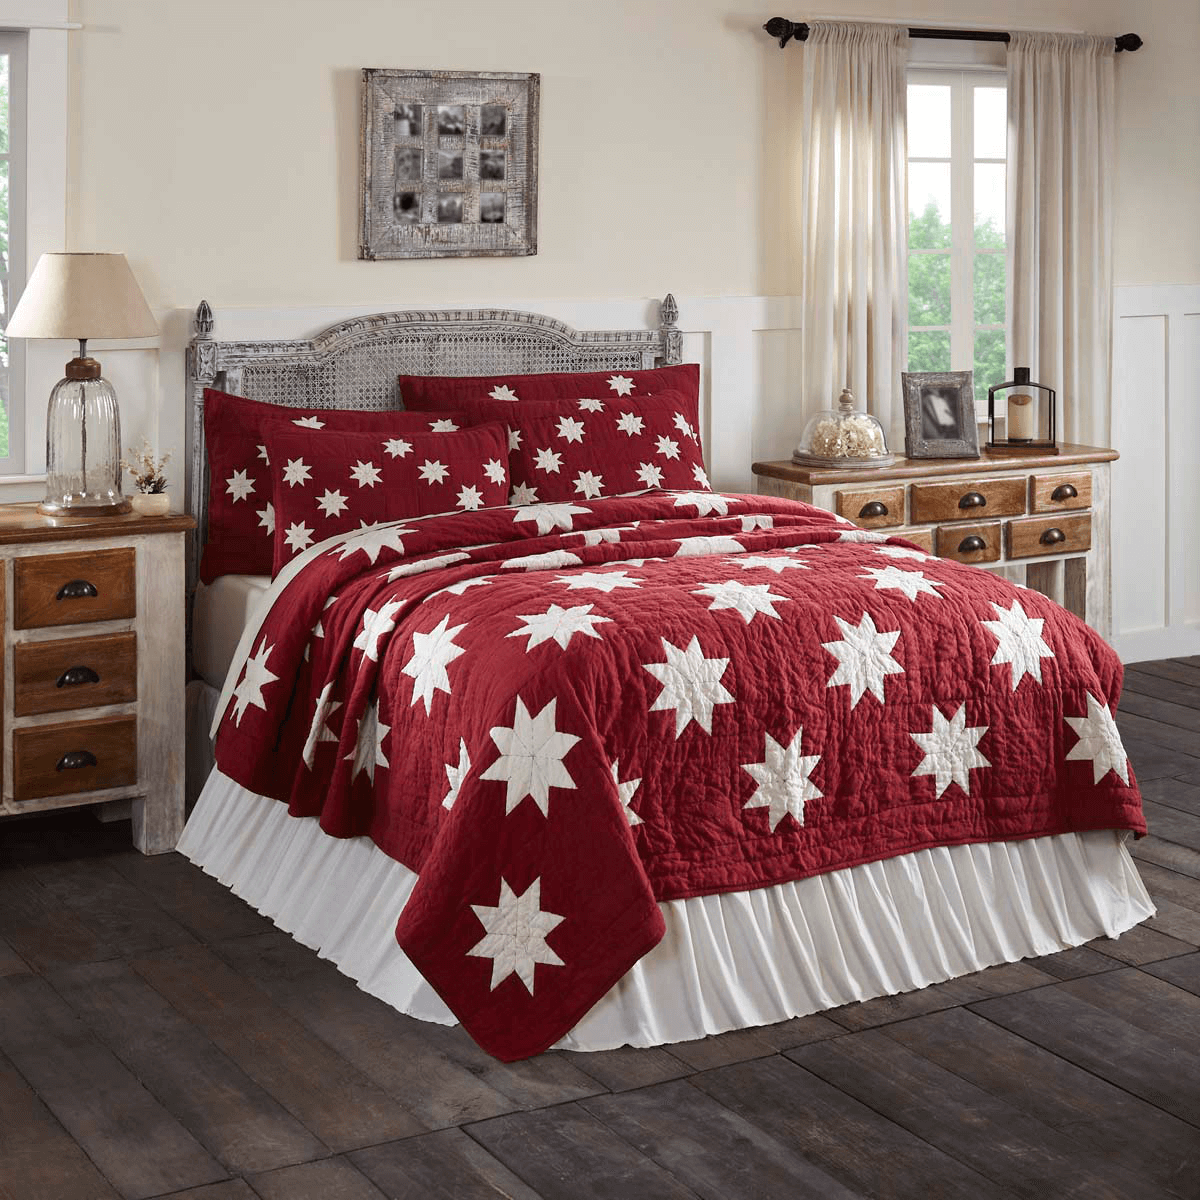 Kent Snowflake Quilt Collection - Teton Timberline Trading ... : red snowflake quilt - Adamdwight.com